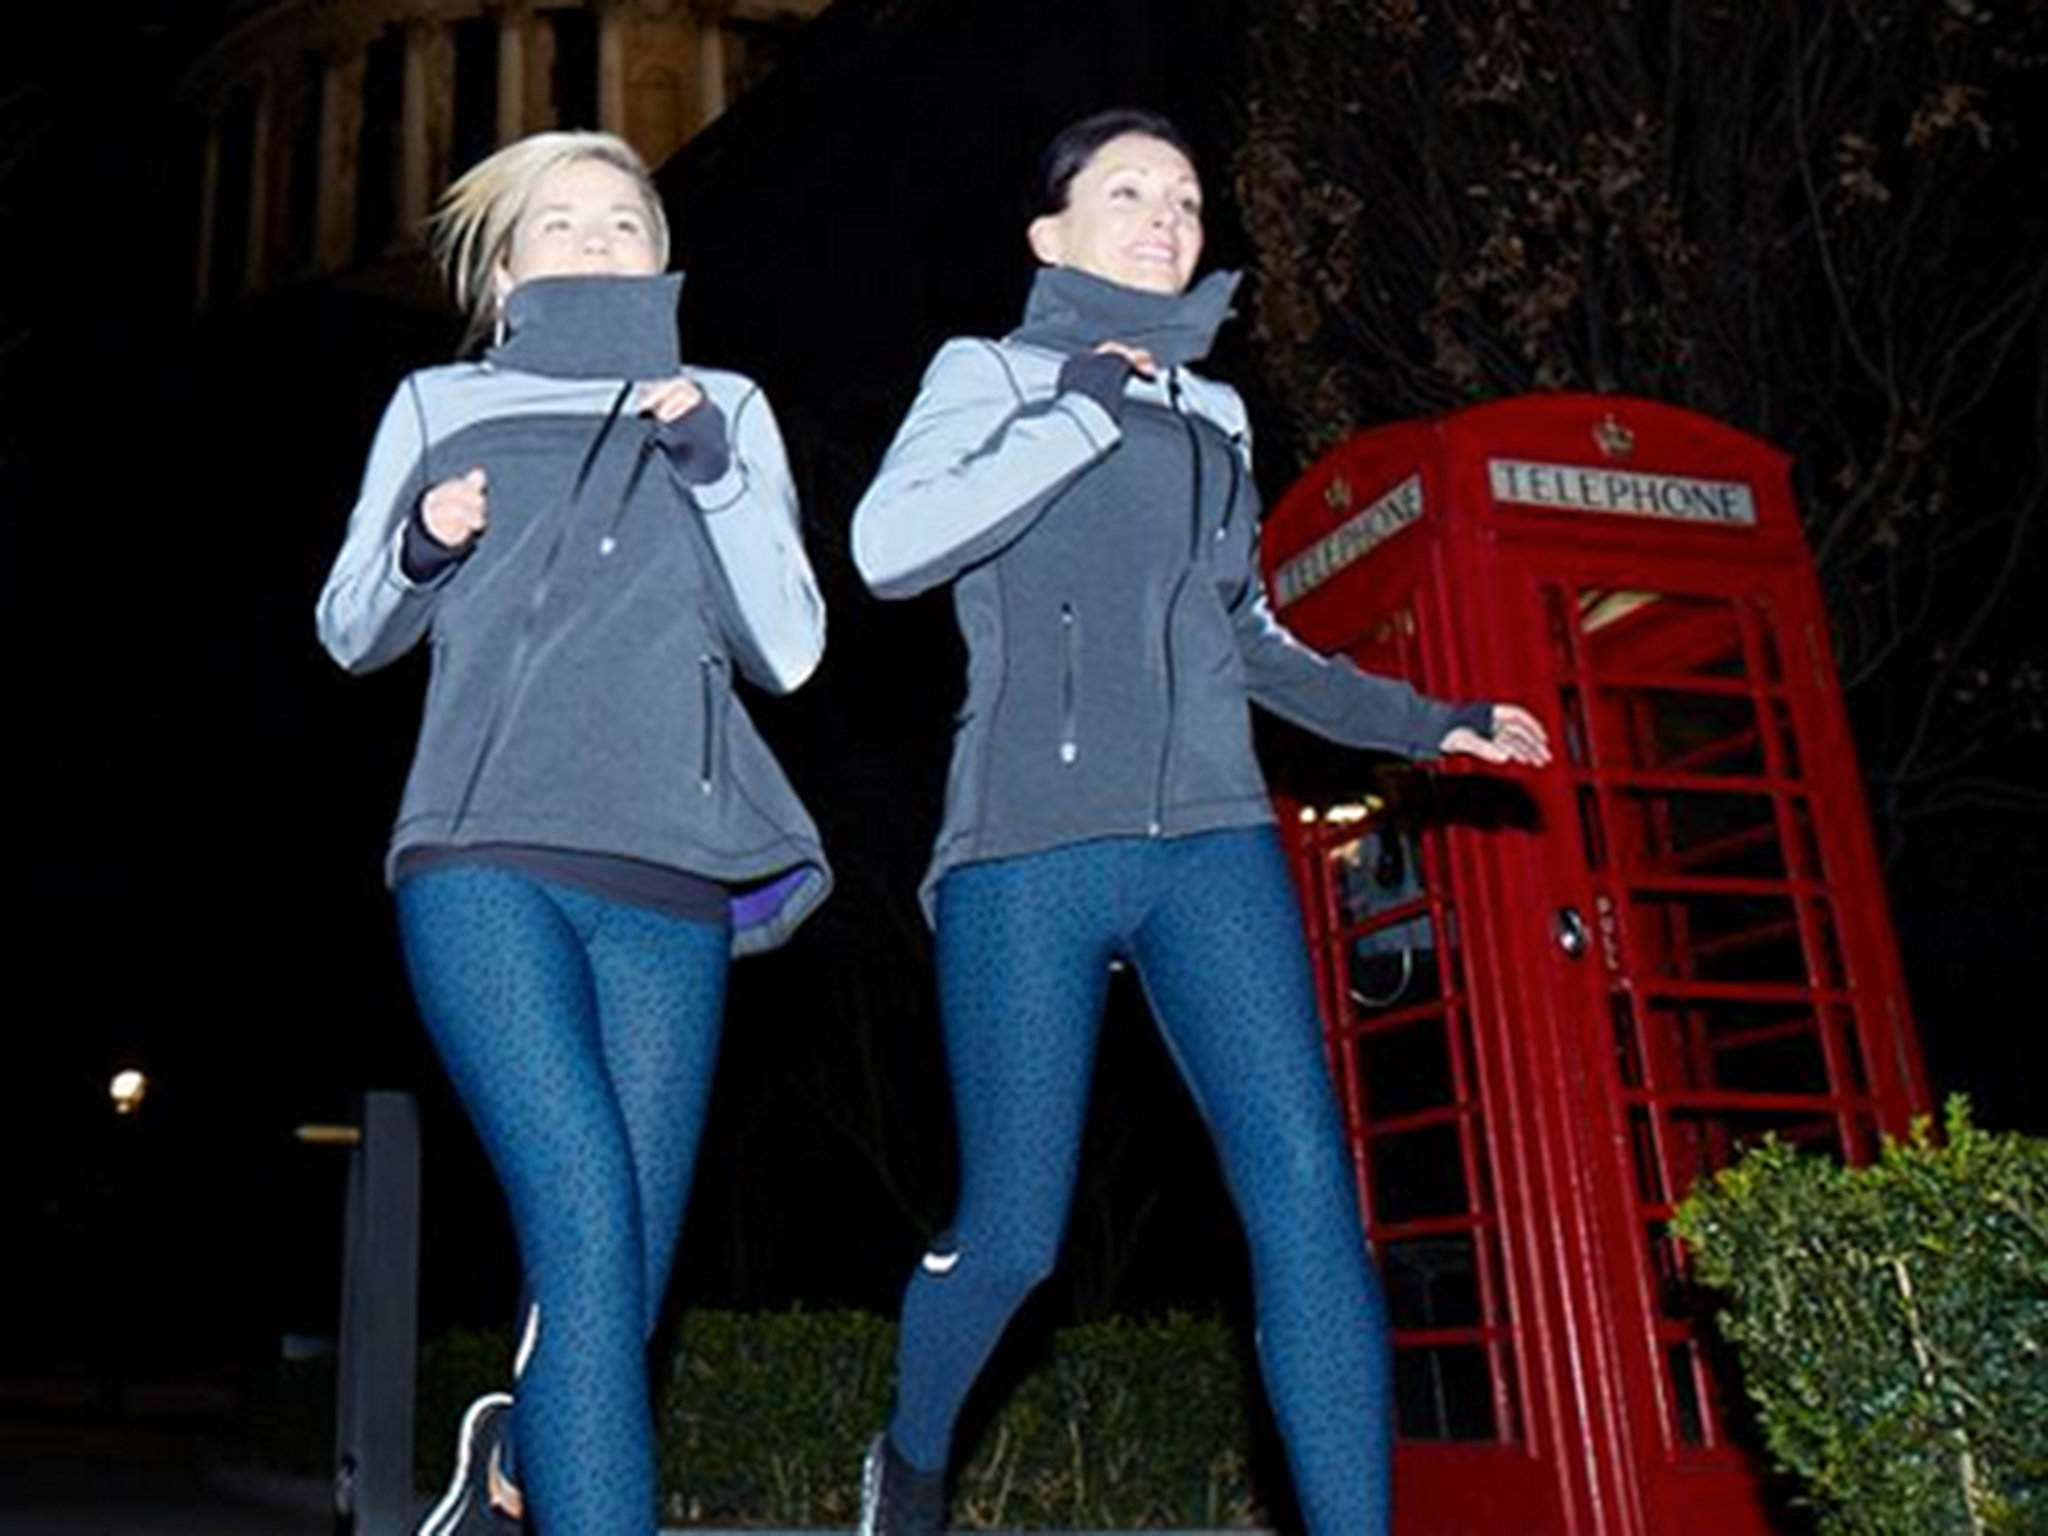 Meet our bloggers Charlotte and Emma of Lunges and Lycra